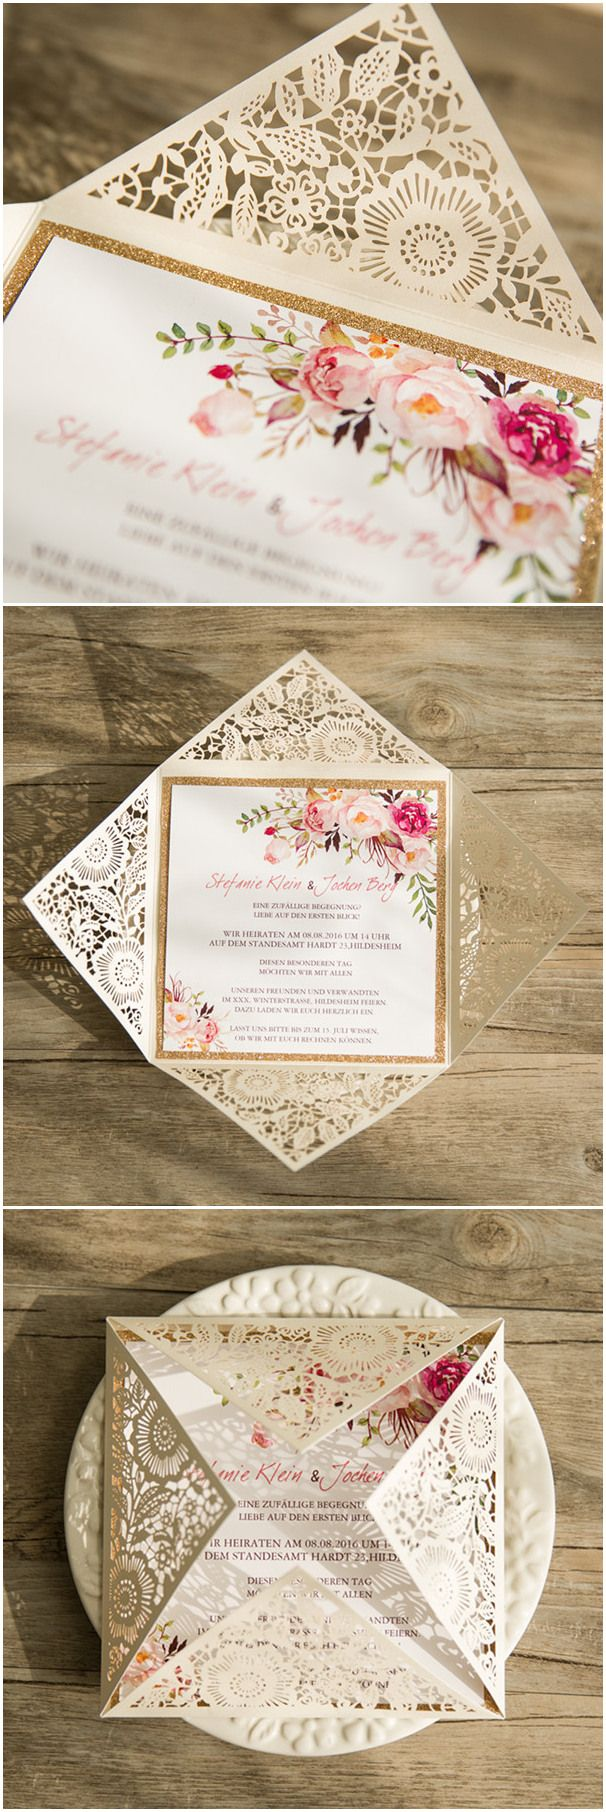 351 Best Wedding Love Invitations Place Cards Guest Books Etc